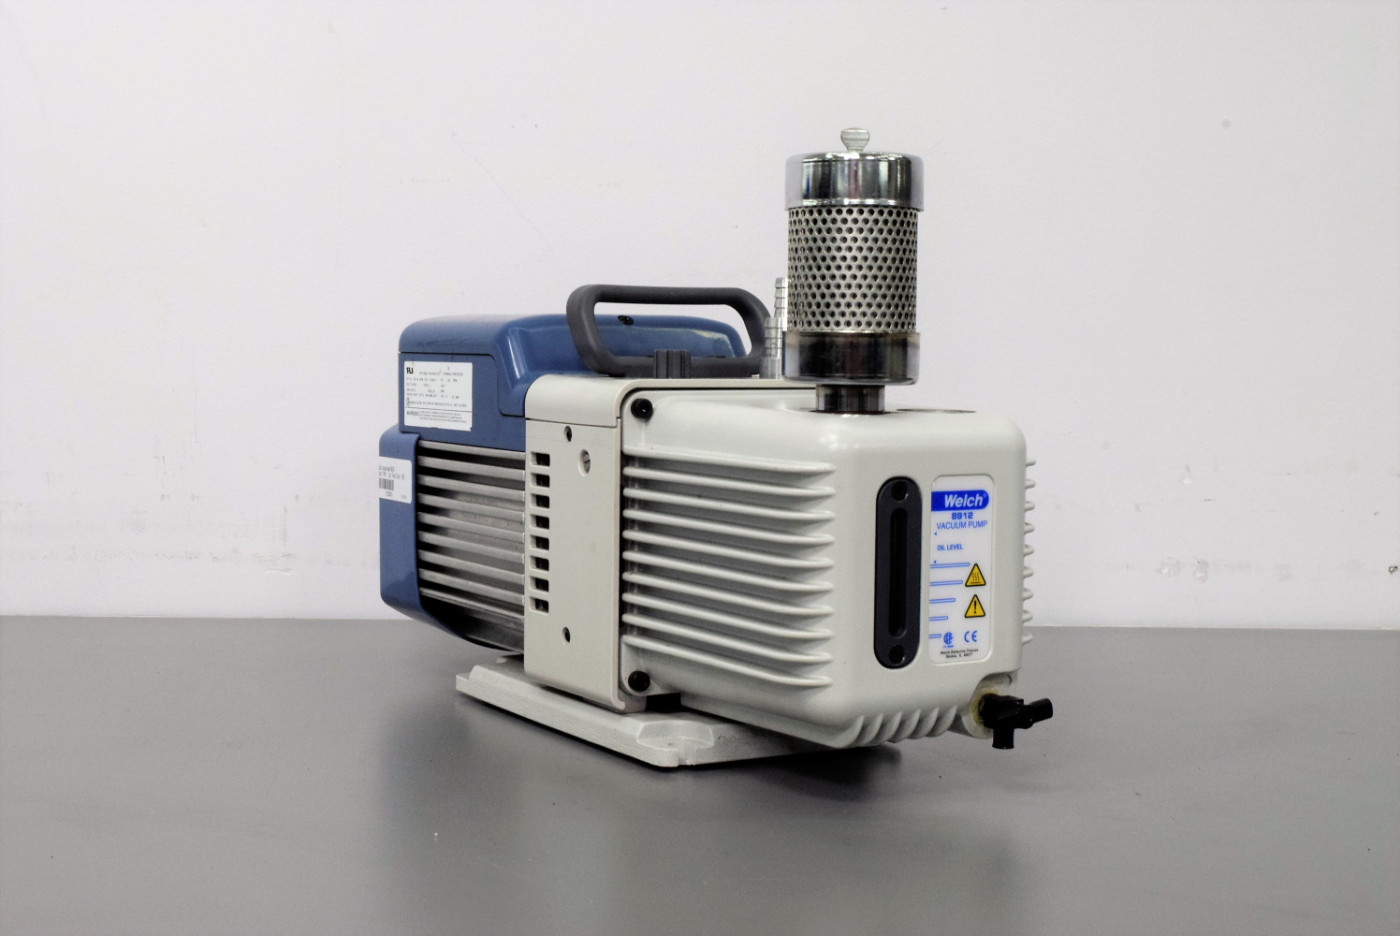 Welch 8912A Vacuum Pump ½ HP 1725 RPM 55 Microns Emerson Motor D06C Warranty